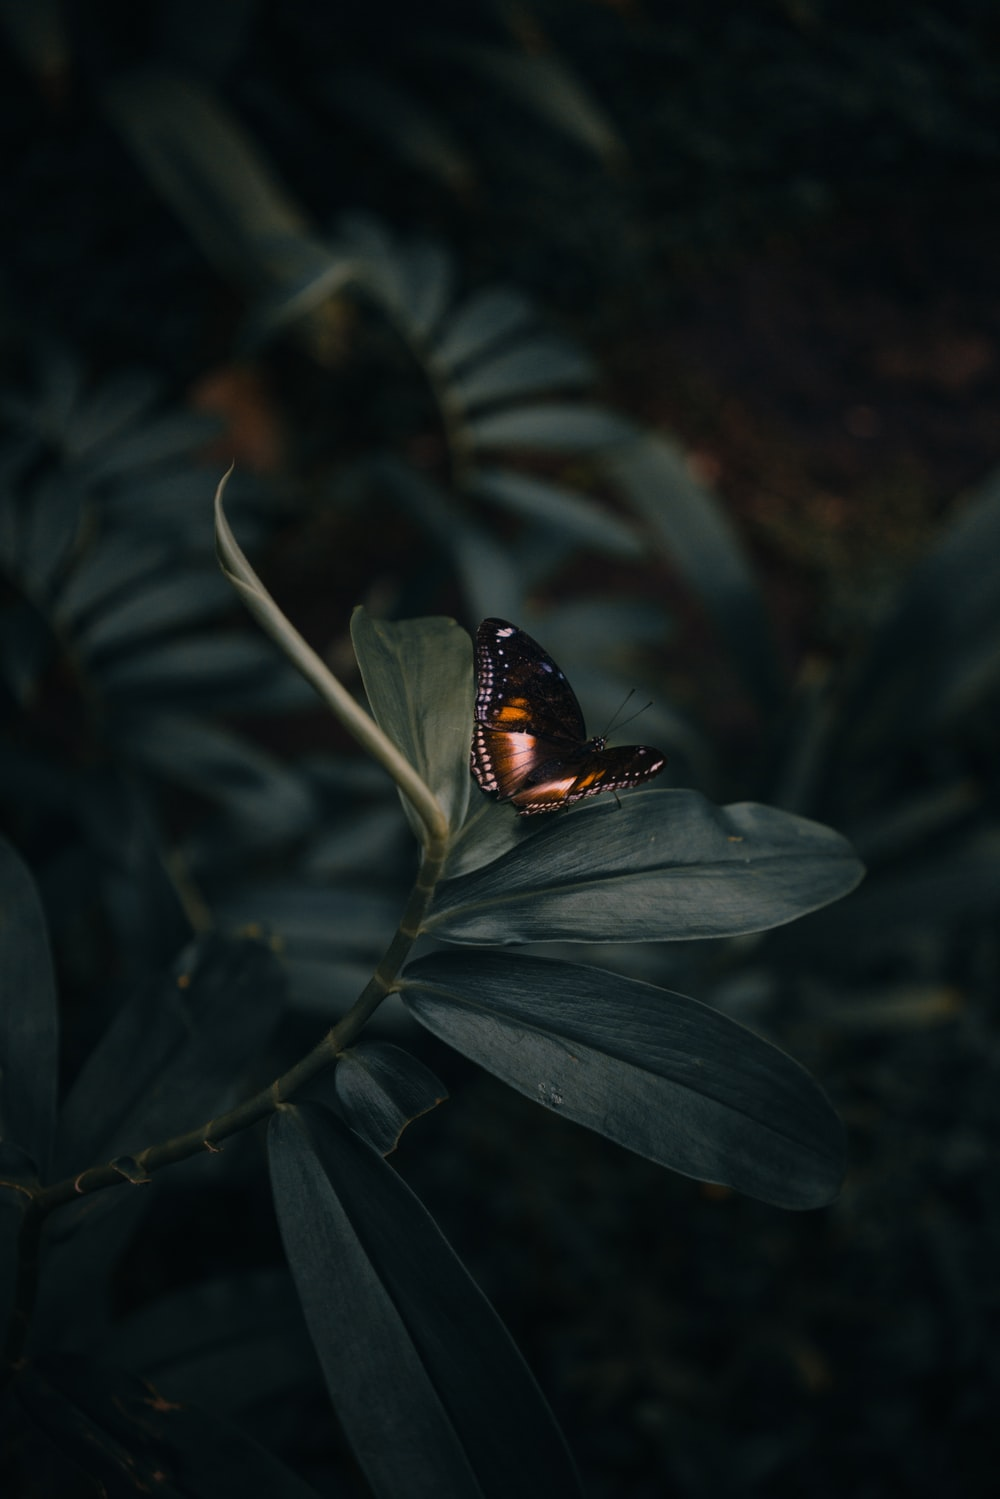 Dark Butterfly Pictures Download Free Images On Unsplash